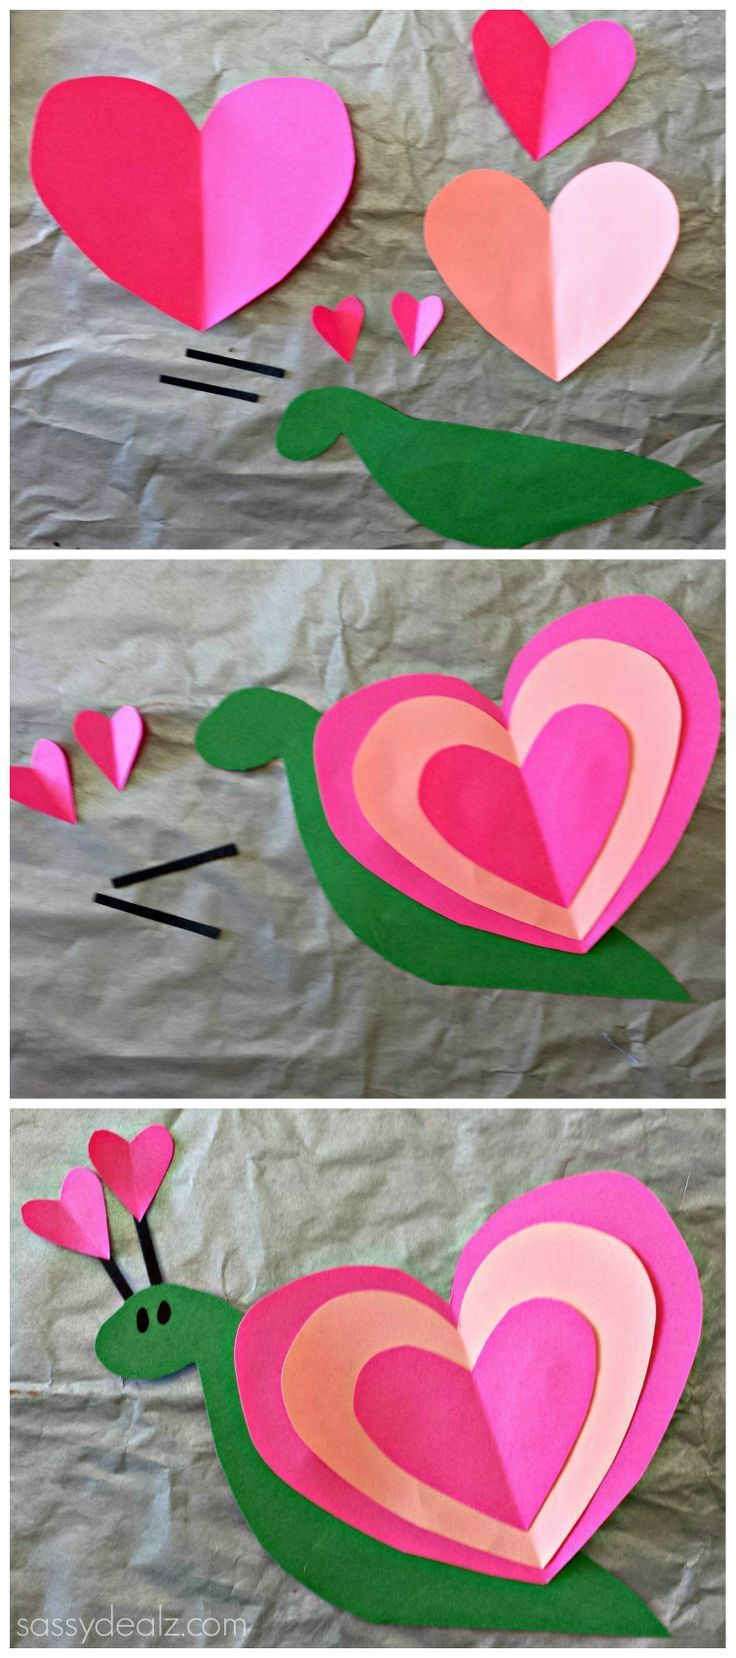 Valentine Crafts For Preschoolers To Make  204 best Preschool Valentine s Day Crafts images on